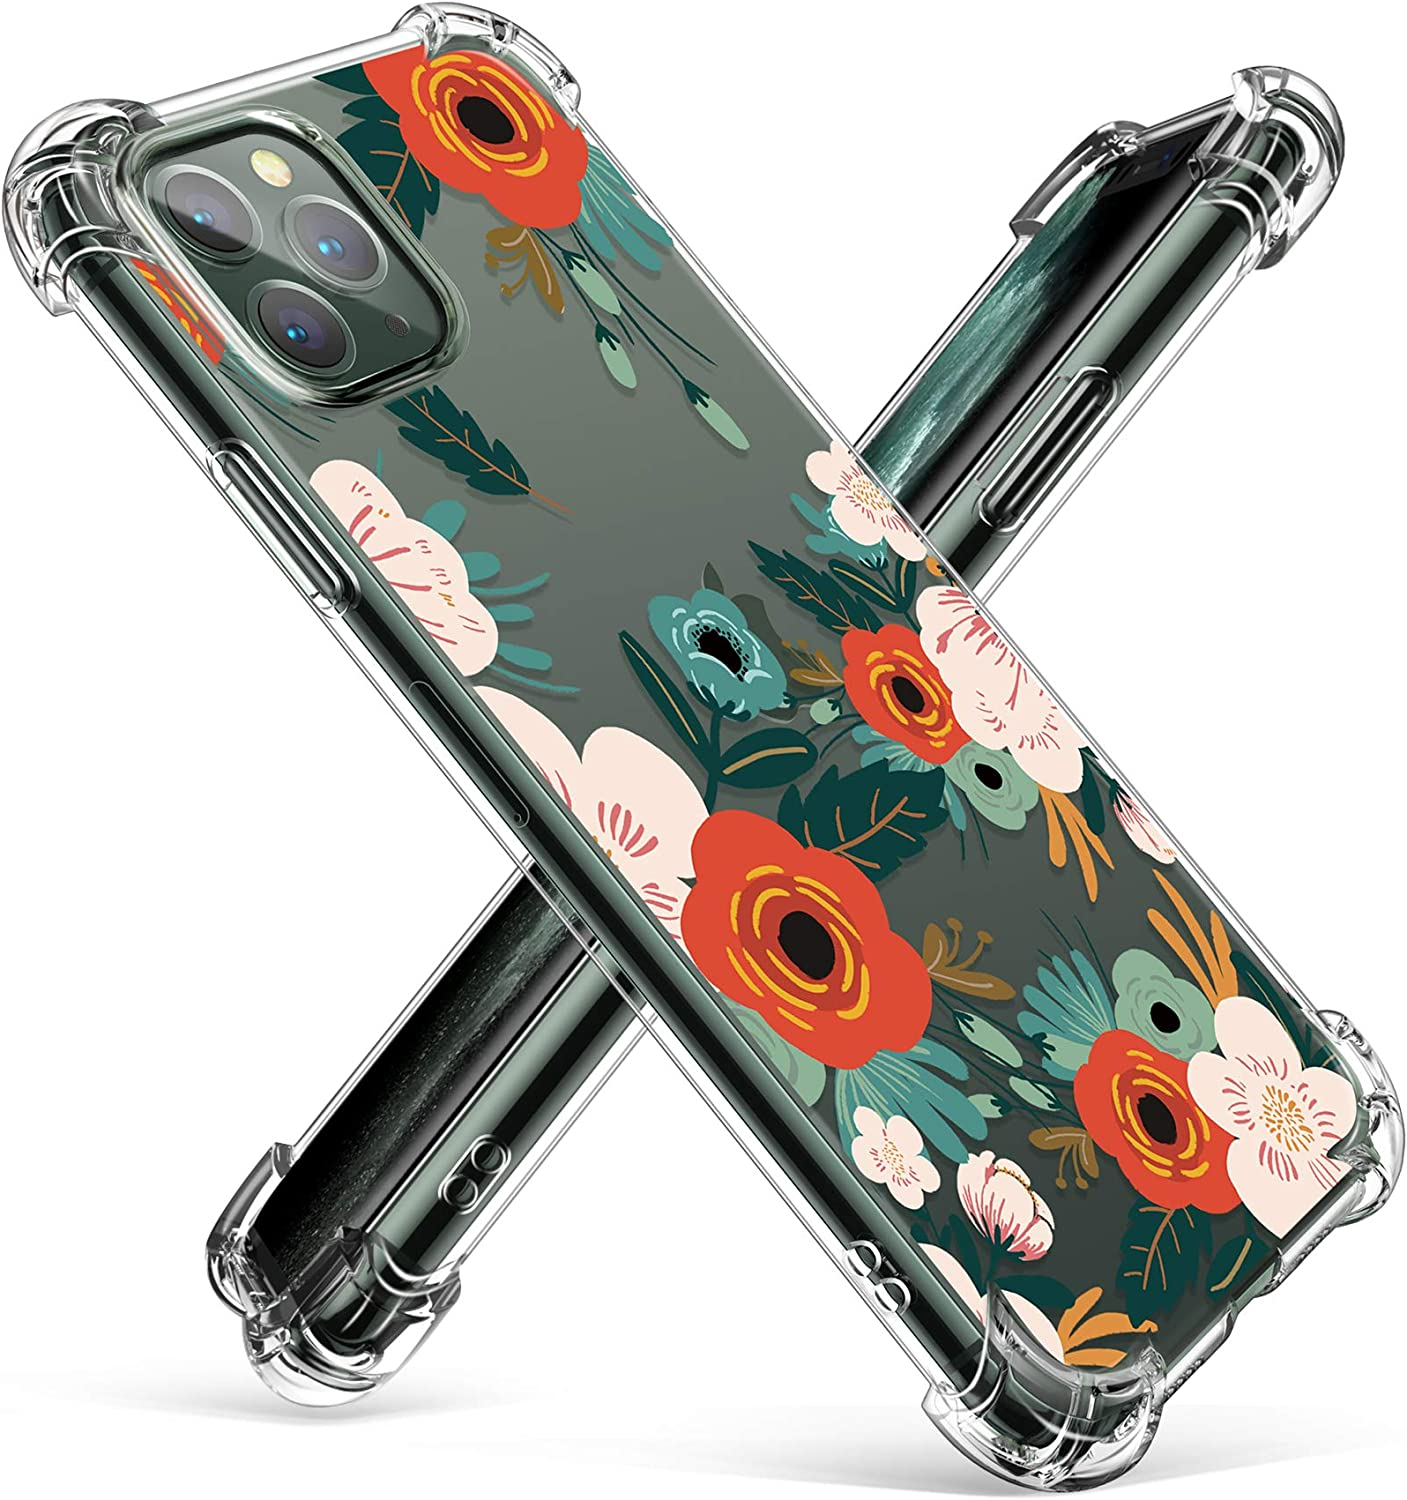 GVIEWIN Floden Lite Series Case Compatible with iPhone 11 Pro Max 6.5 Inch 2019, Clear Flower Design Soft & Flexible TPU Slim Shockproof Bumper Protective Floral Cover Case (Flowering/Reseda Green)